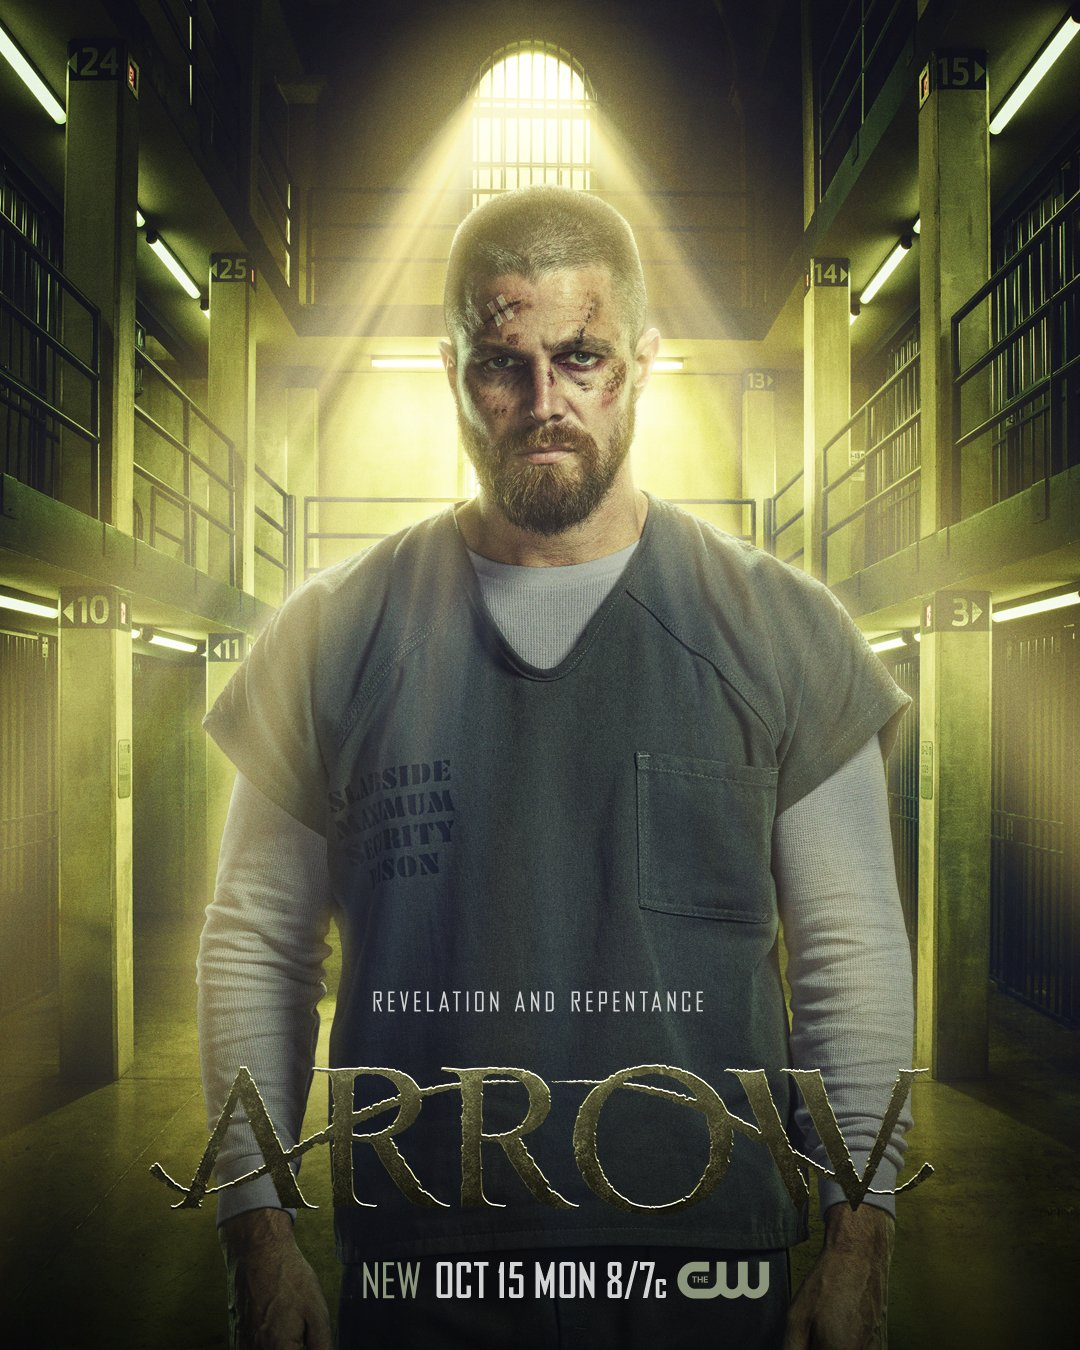 Arrow season 7 poster - Revelation and Repentance.png